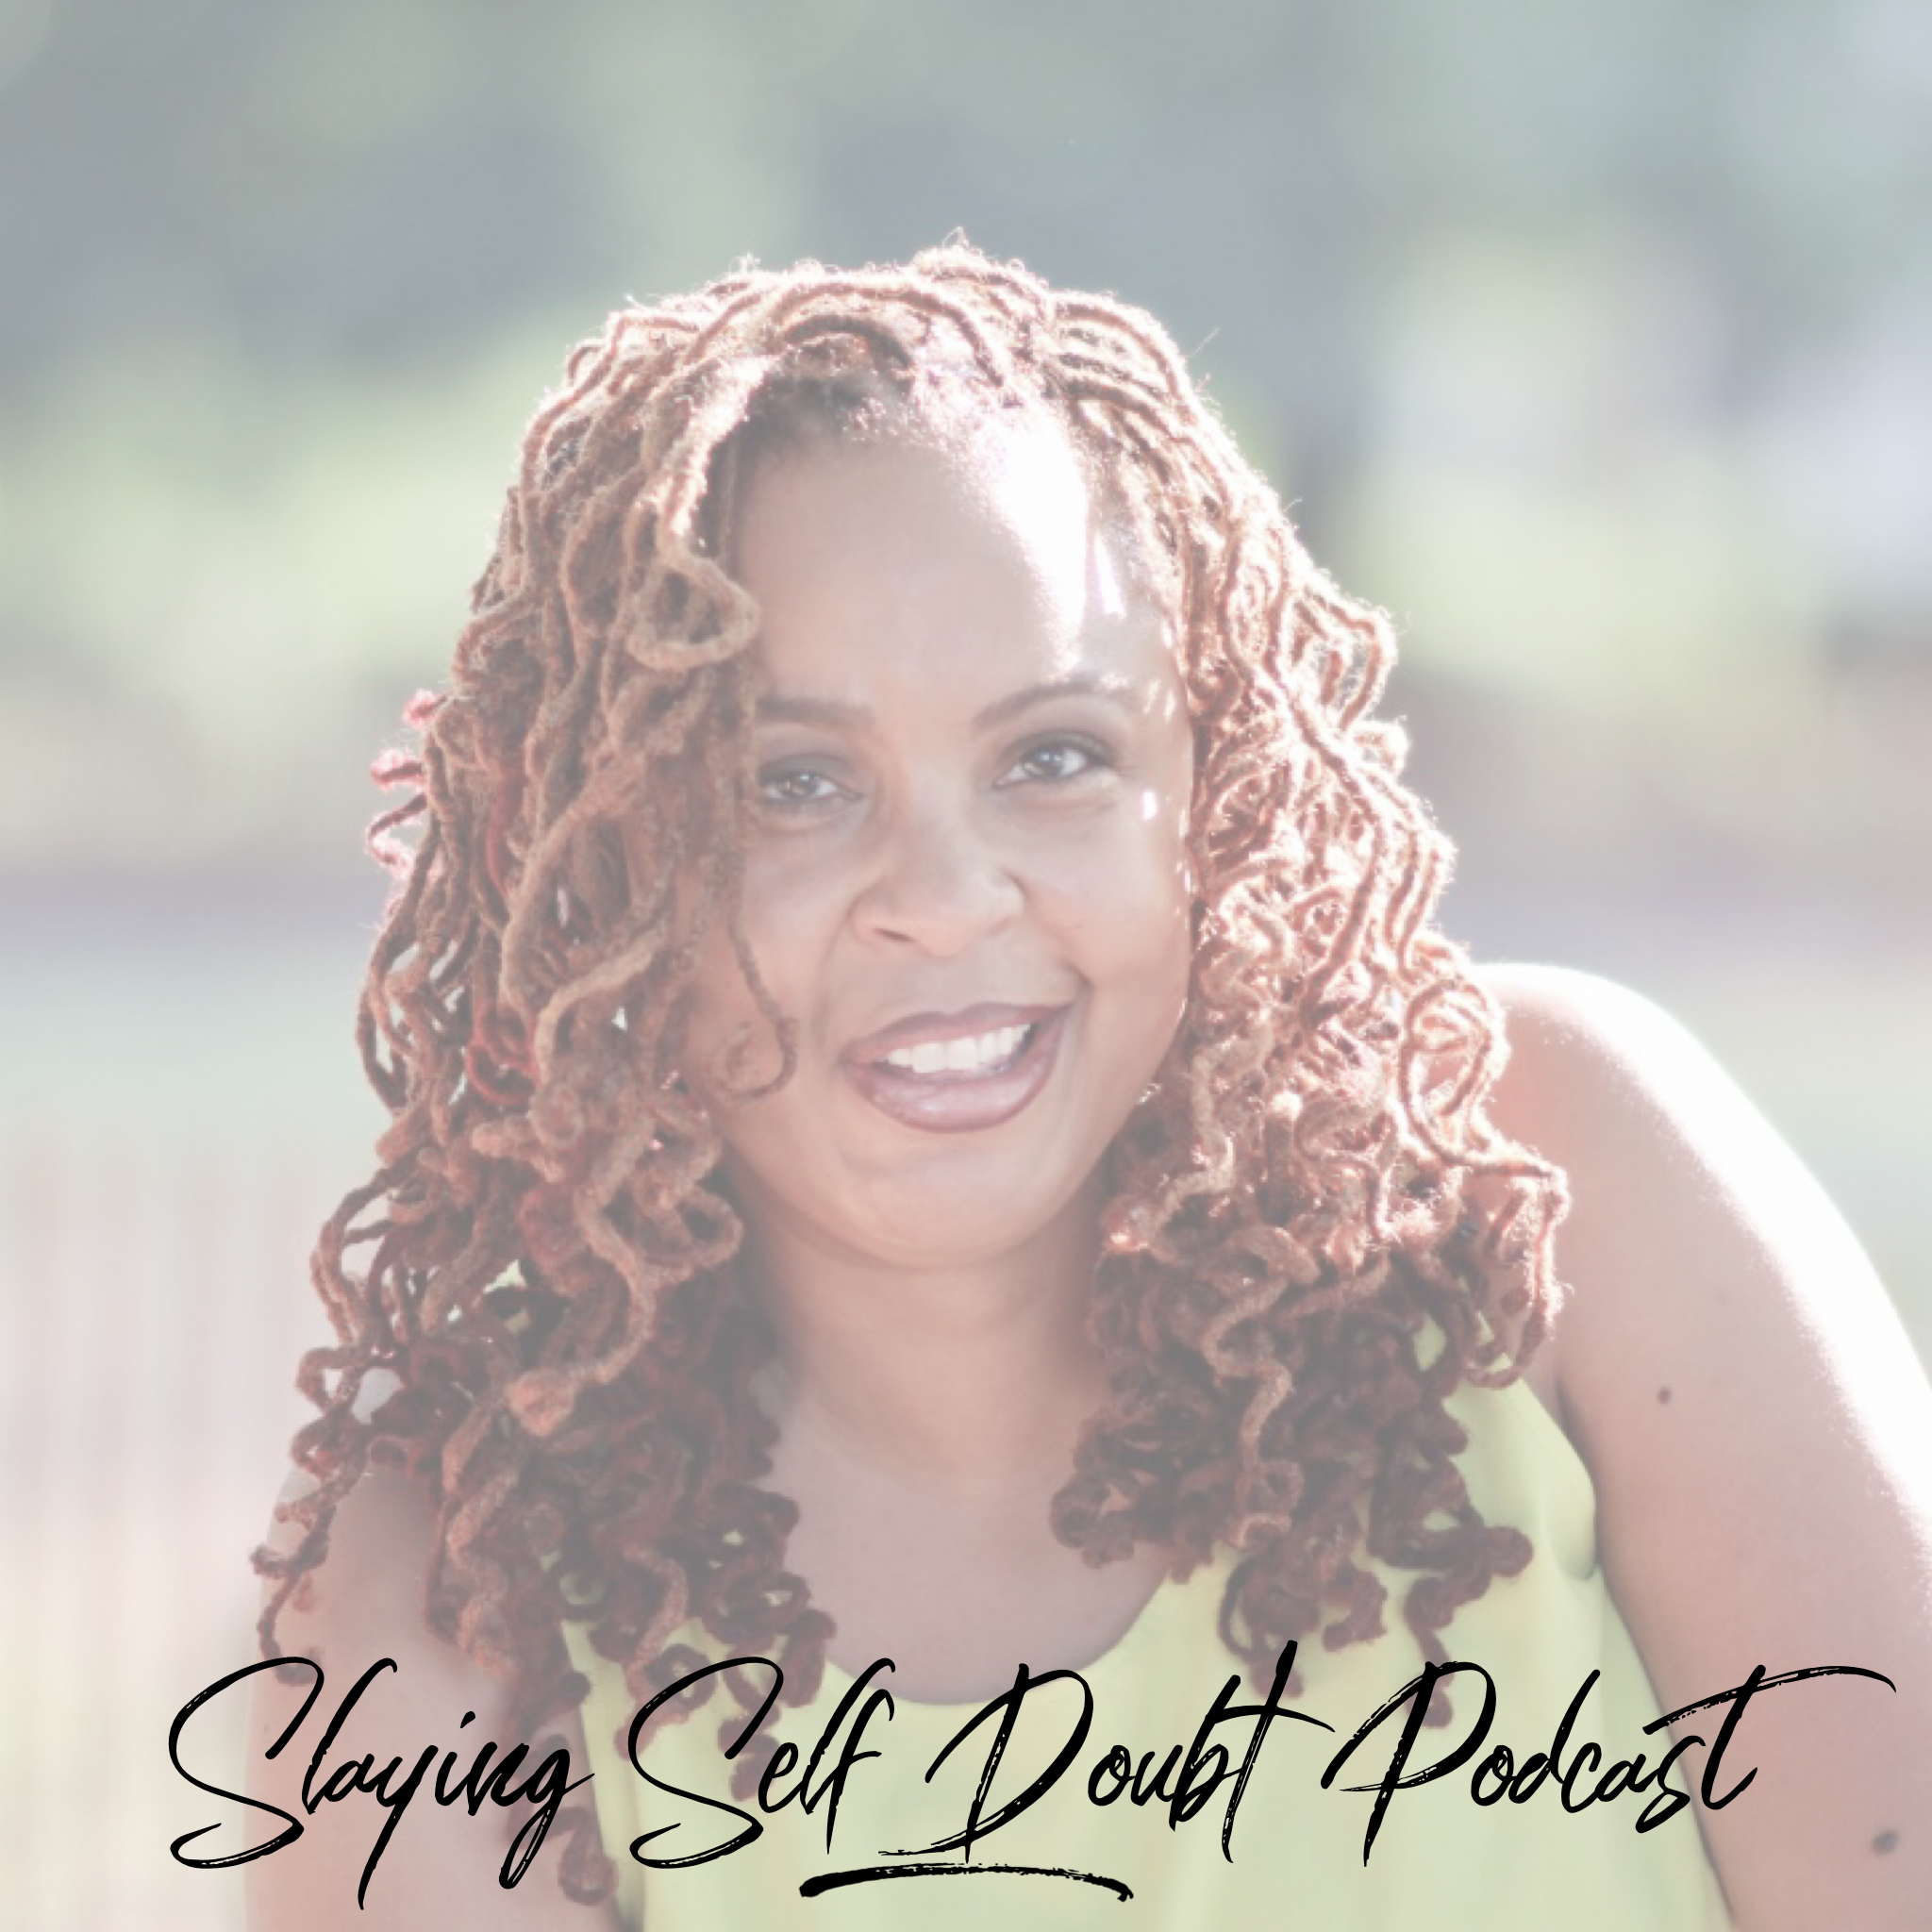 Slaying Self Doubt Podcast